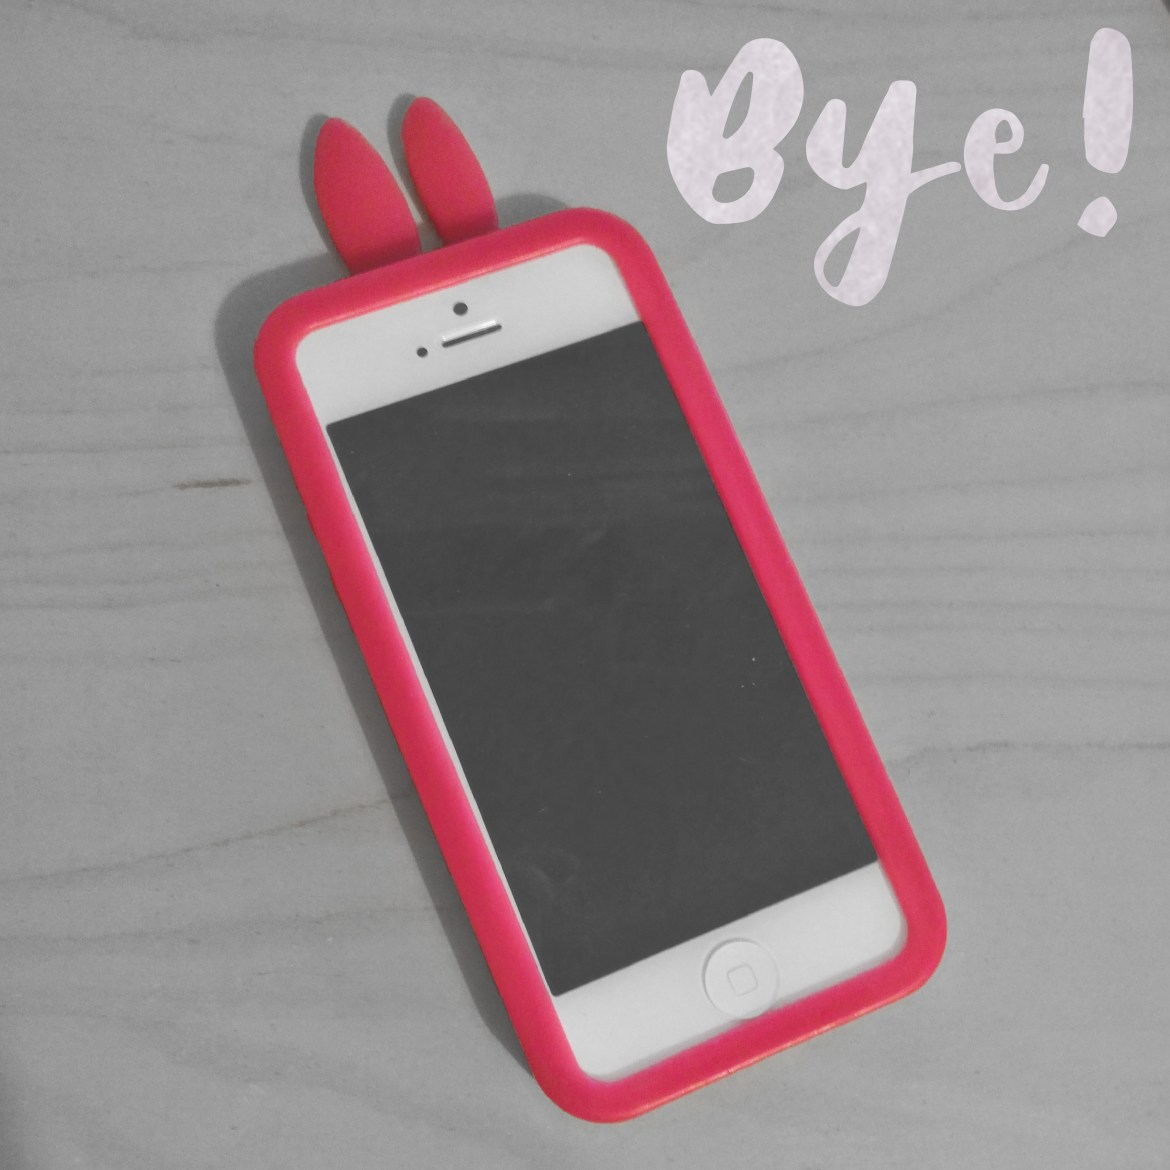 bye-iphone